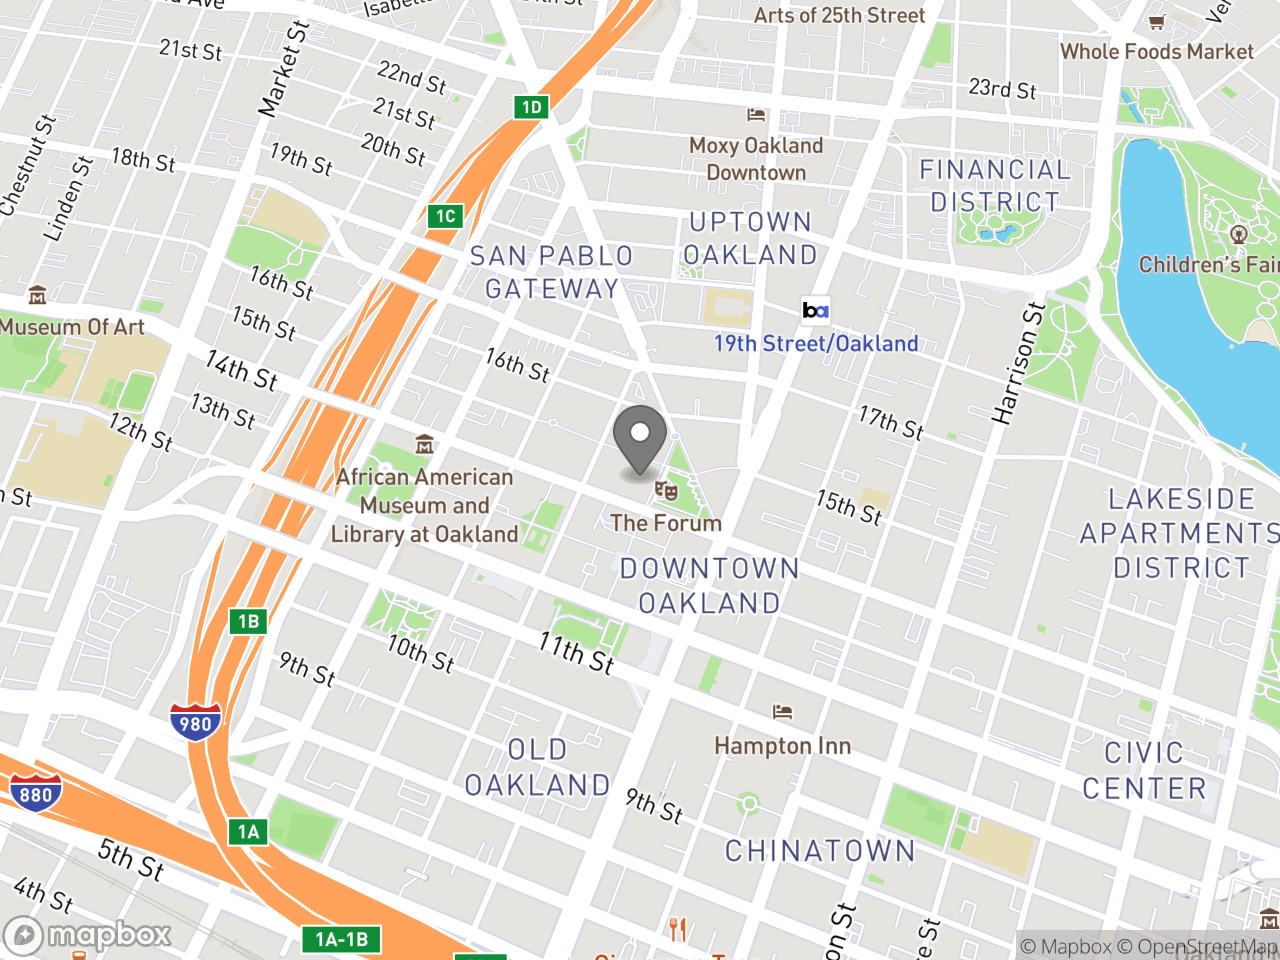 Map image for August 1, 2019 Privacy Advisory Commission, located at 1 Frank H Ogawa Plaza in Oakland, CA 94612